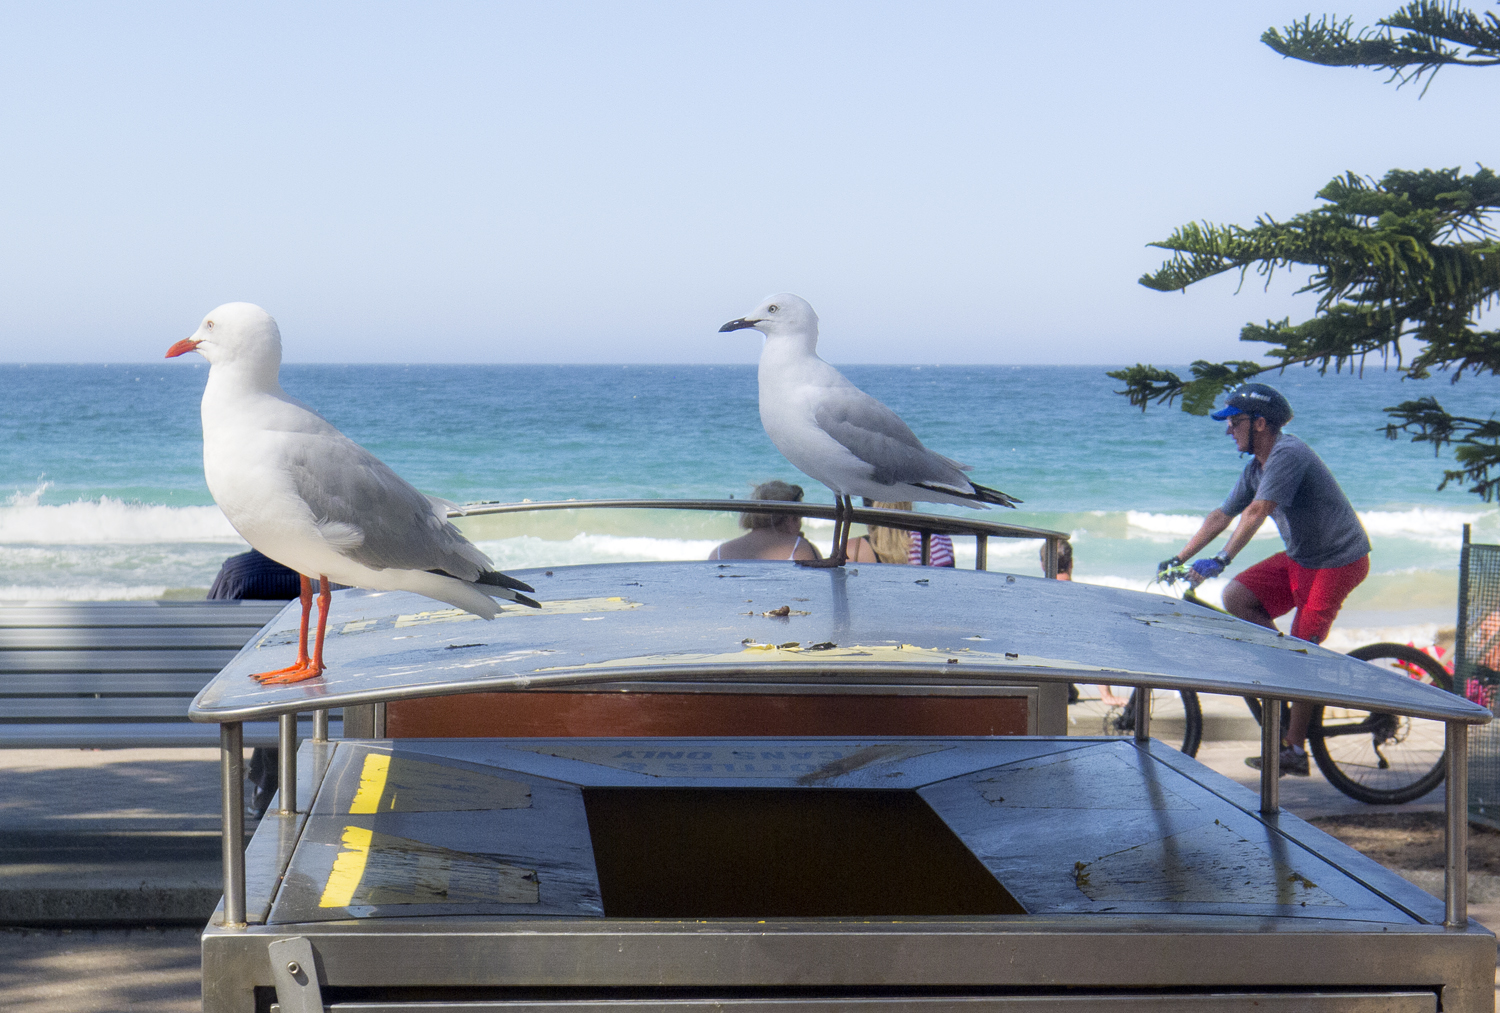 These aggressive gulls later tried to steal my sandwich.